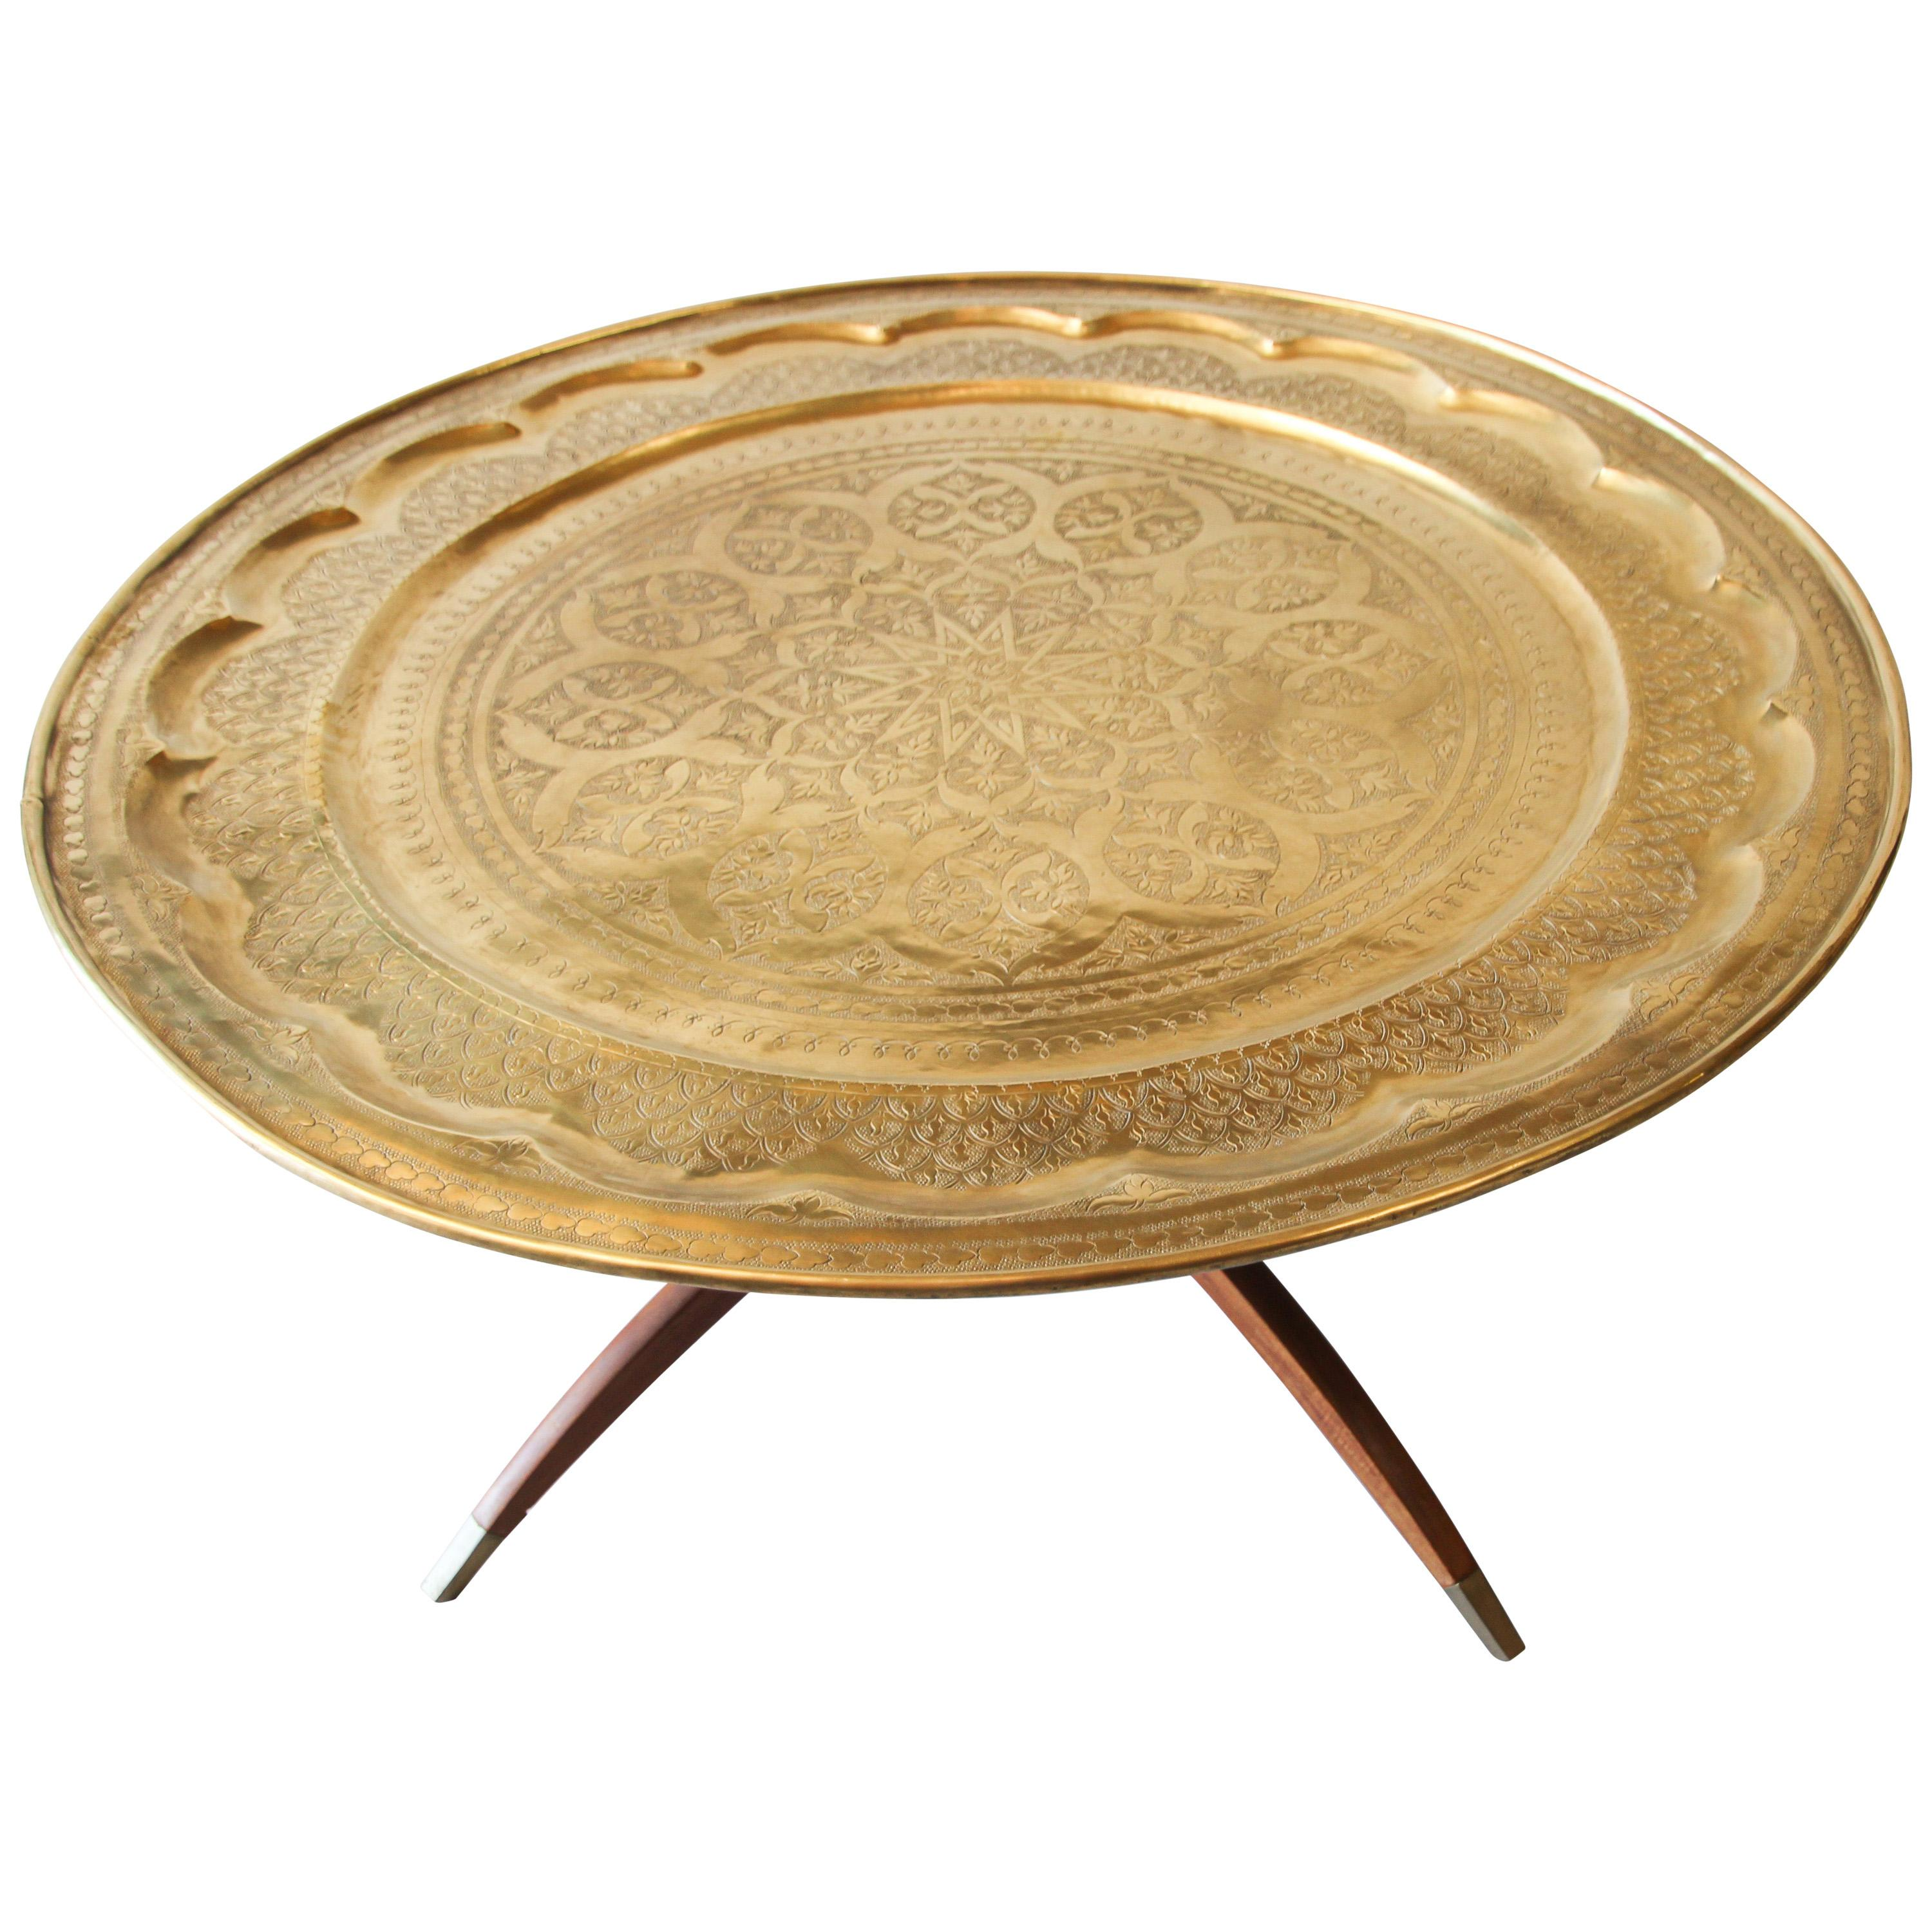 Large Midcentury Round Brass Tray Table on Folding Stand